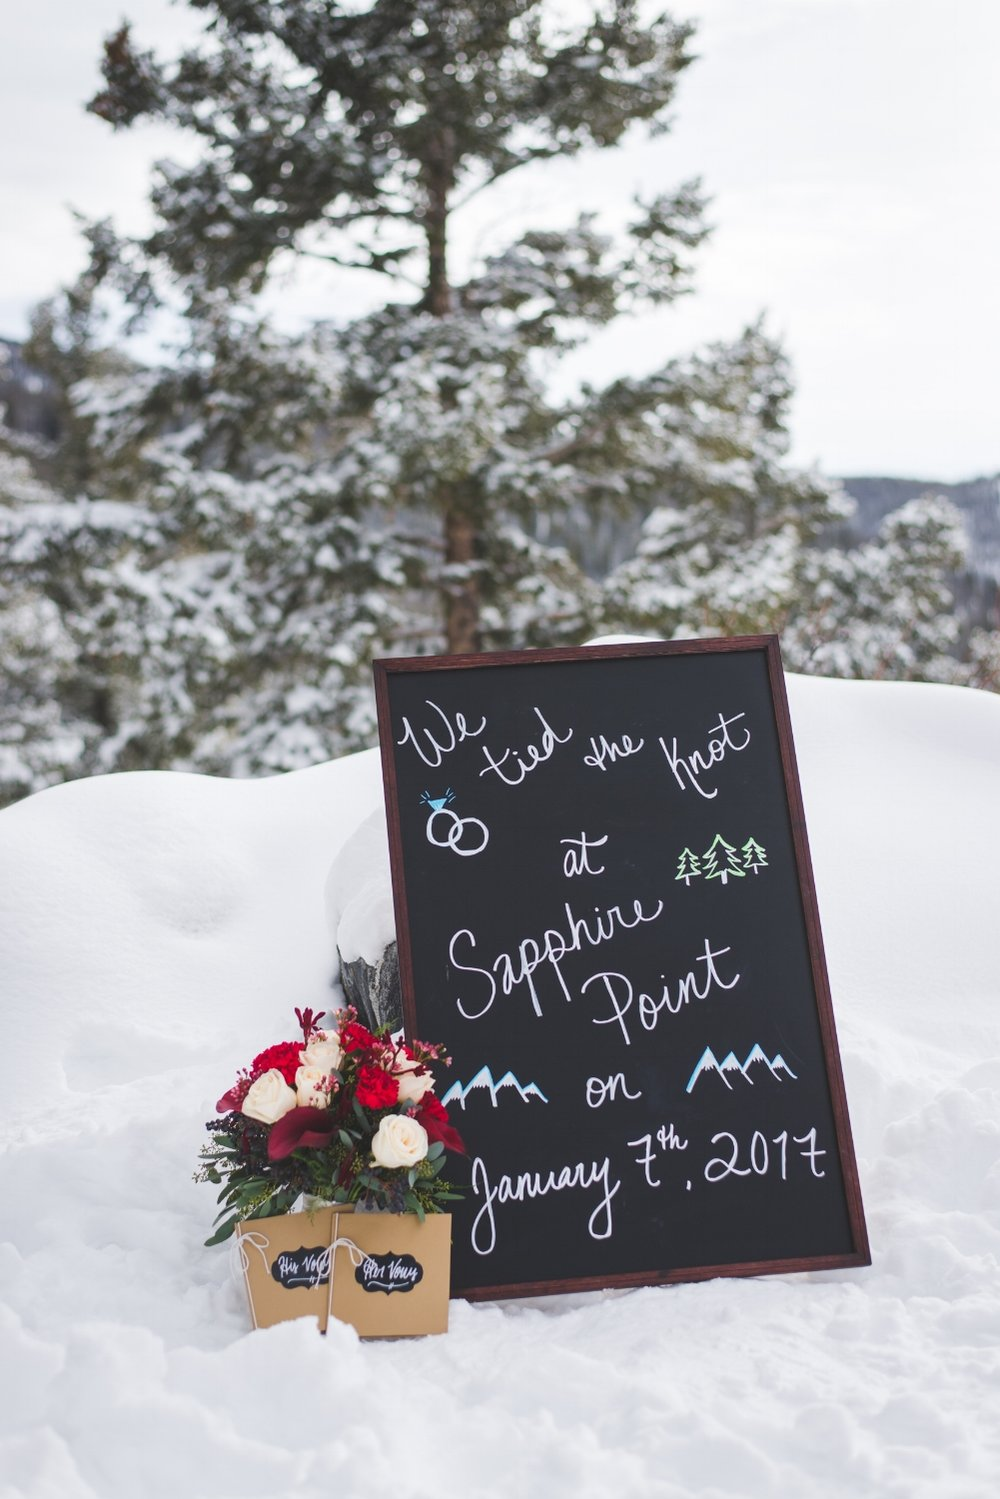 adorable details at the winter elopement at Sapphire Point: sweet vow books, beautiful flowers and a unique chalk board sign commemorating the wedding date.